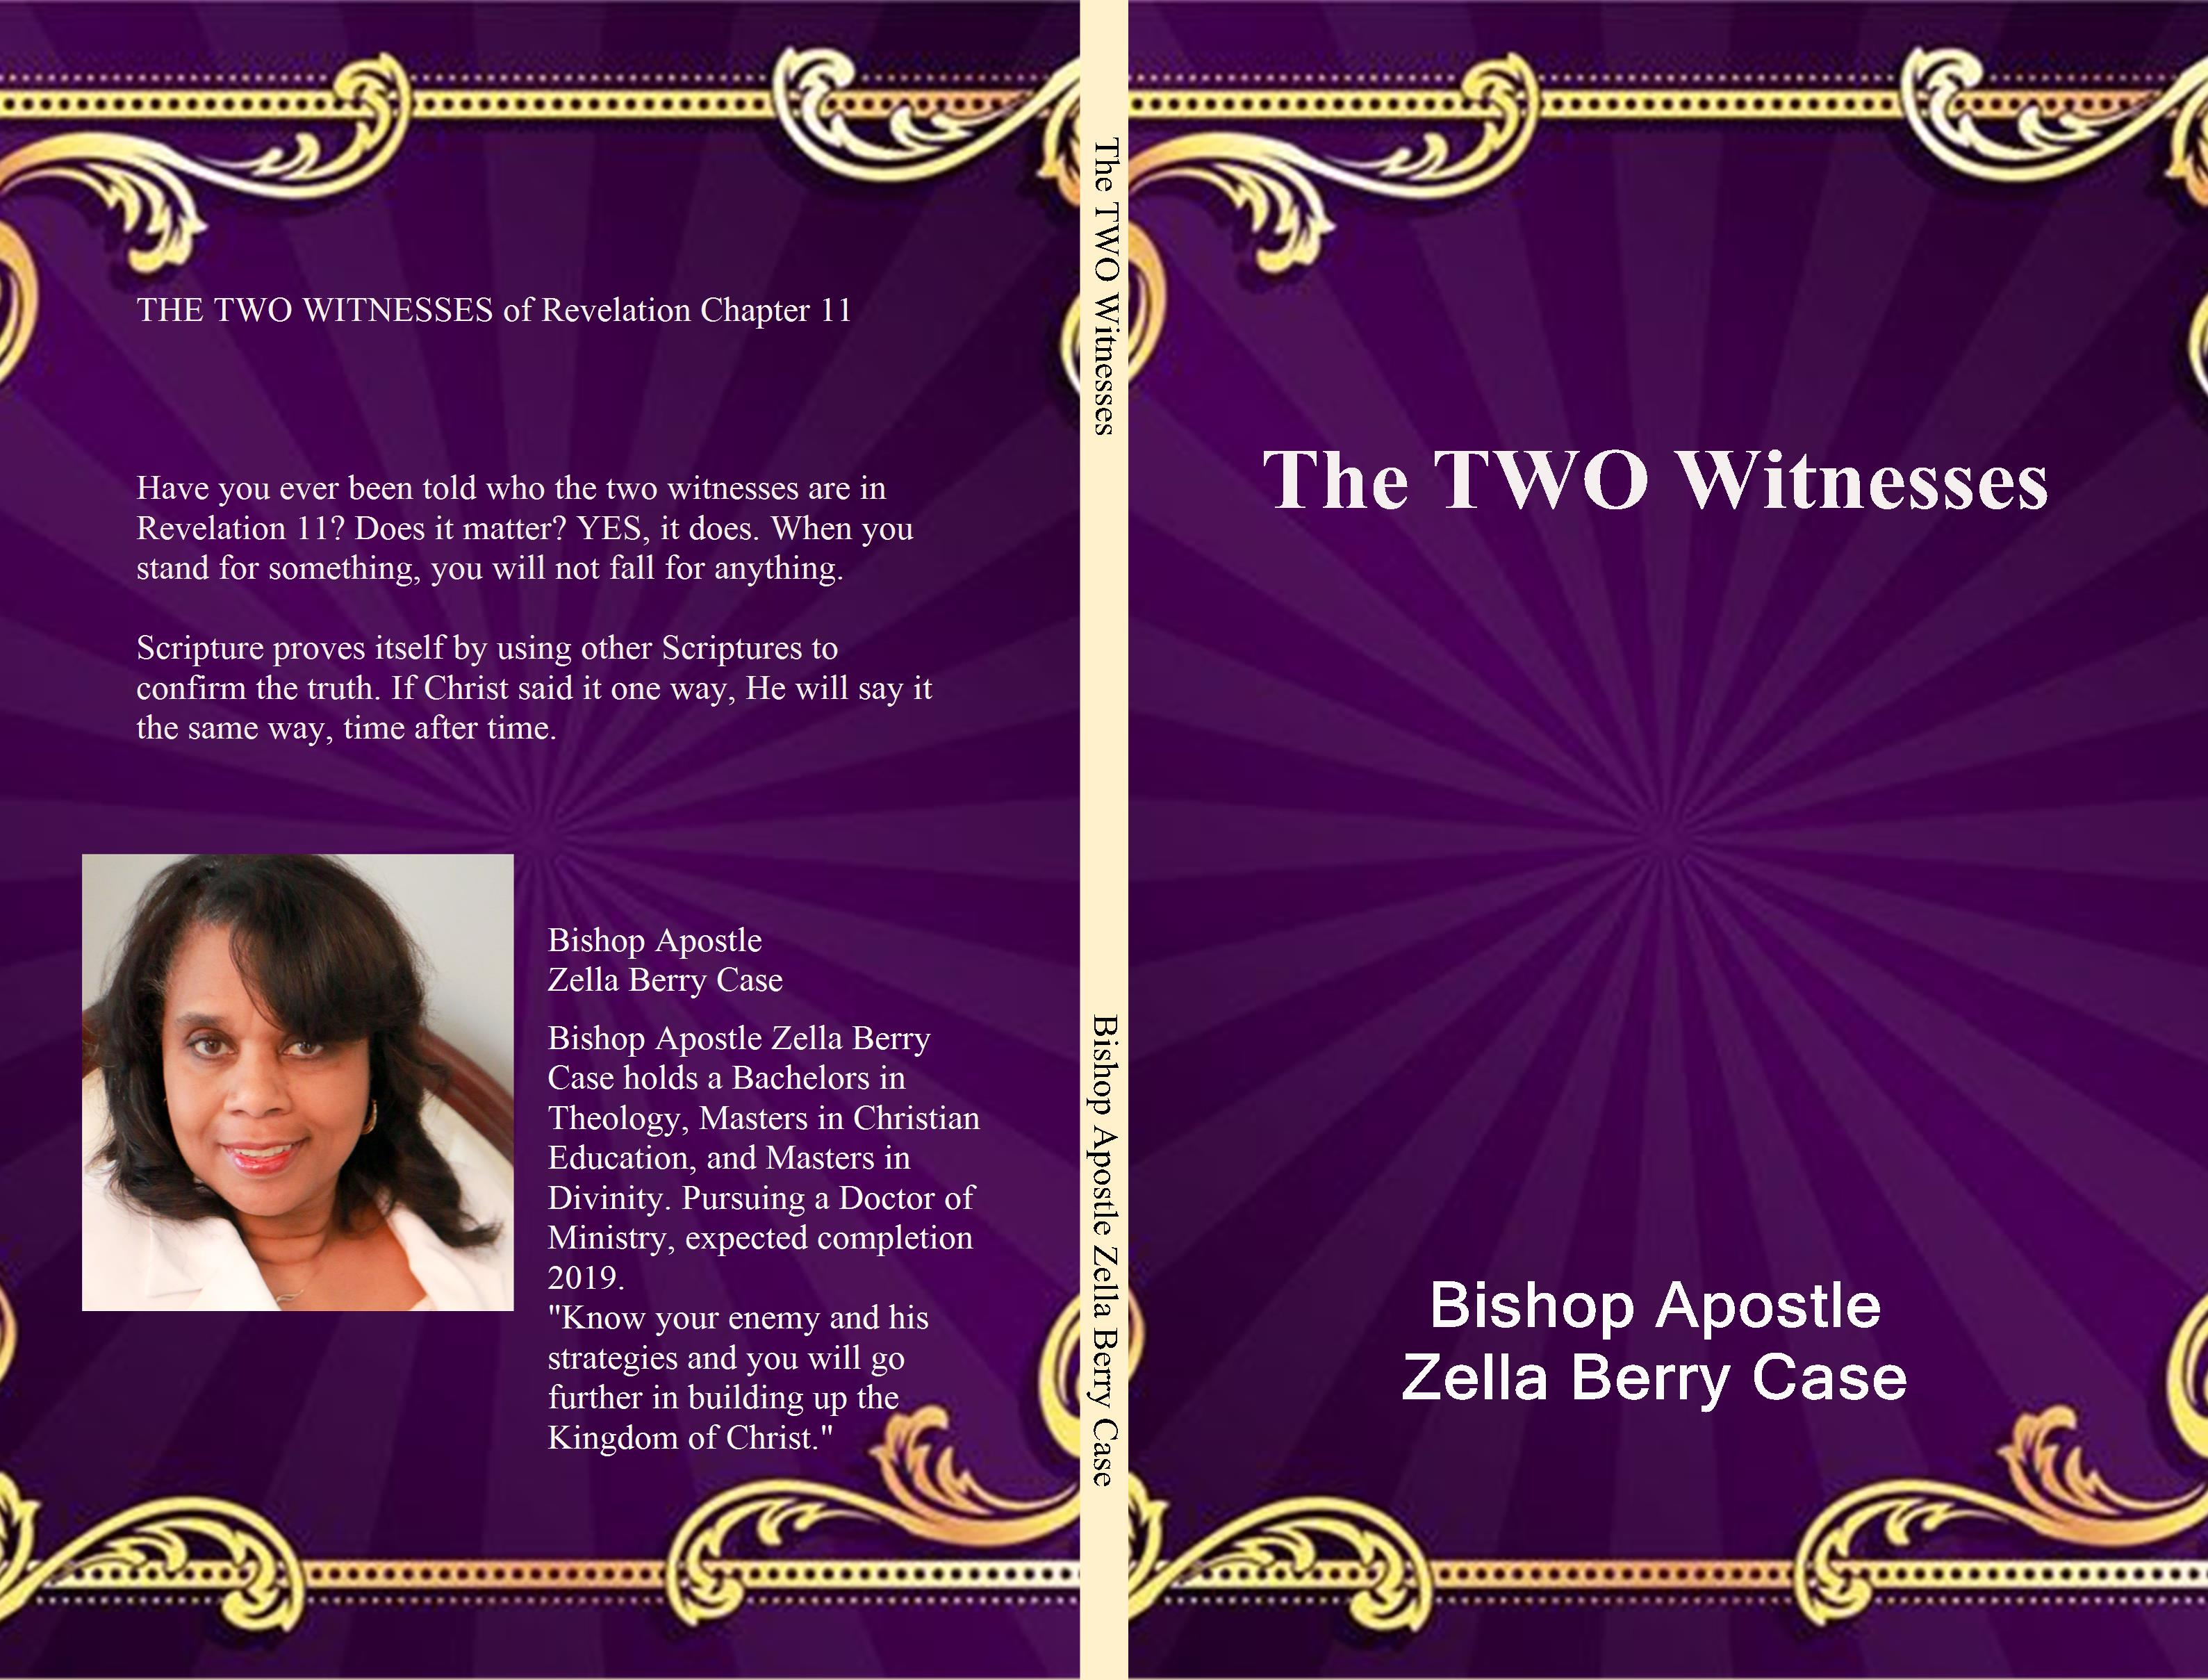 The TWO Witnesses cover image